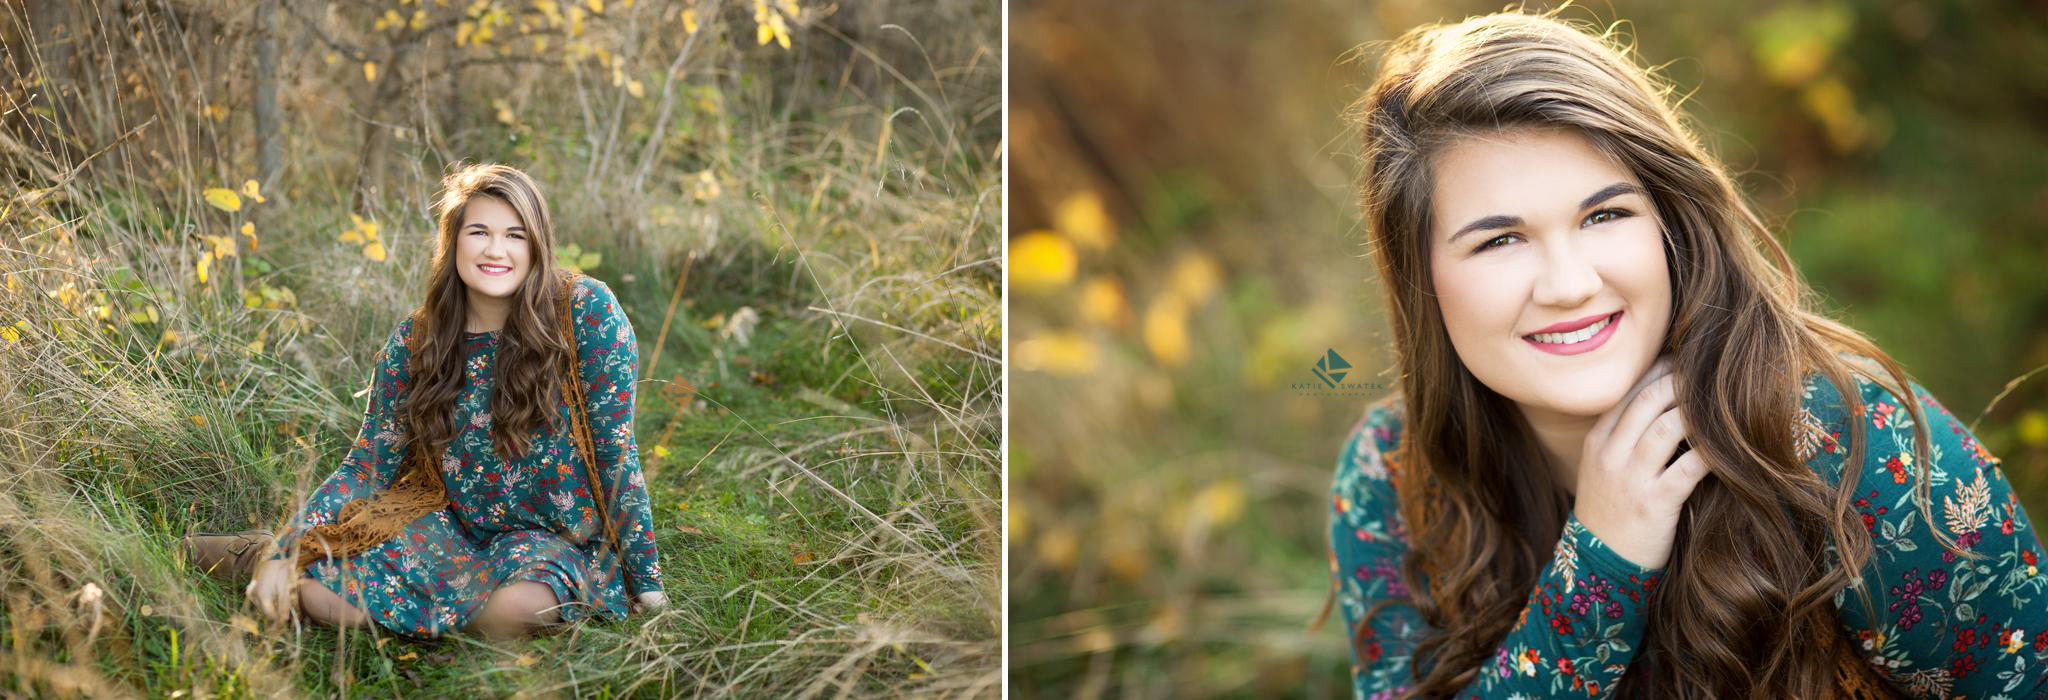 brunette senior girl in a blue floral dress with a mustard crocheted vest sitting in a fall colored field